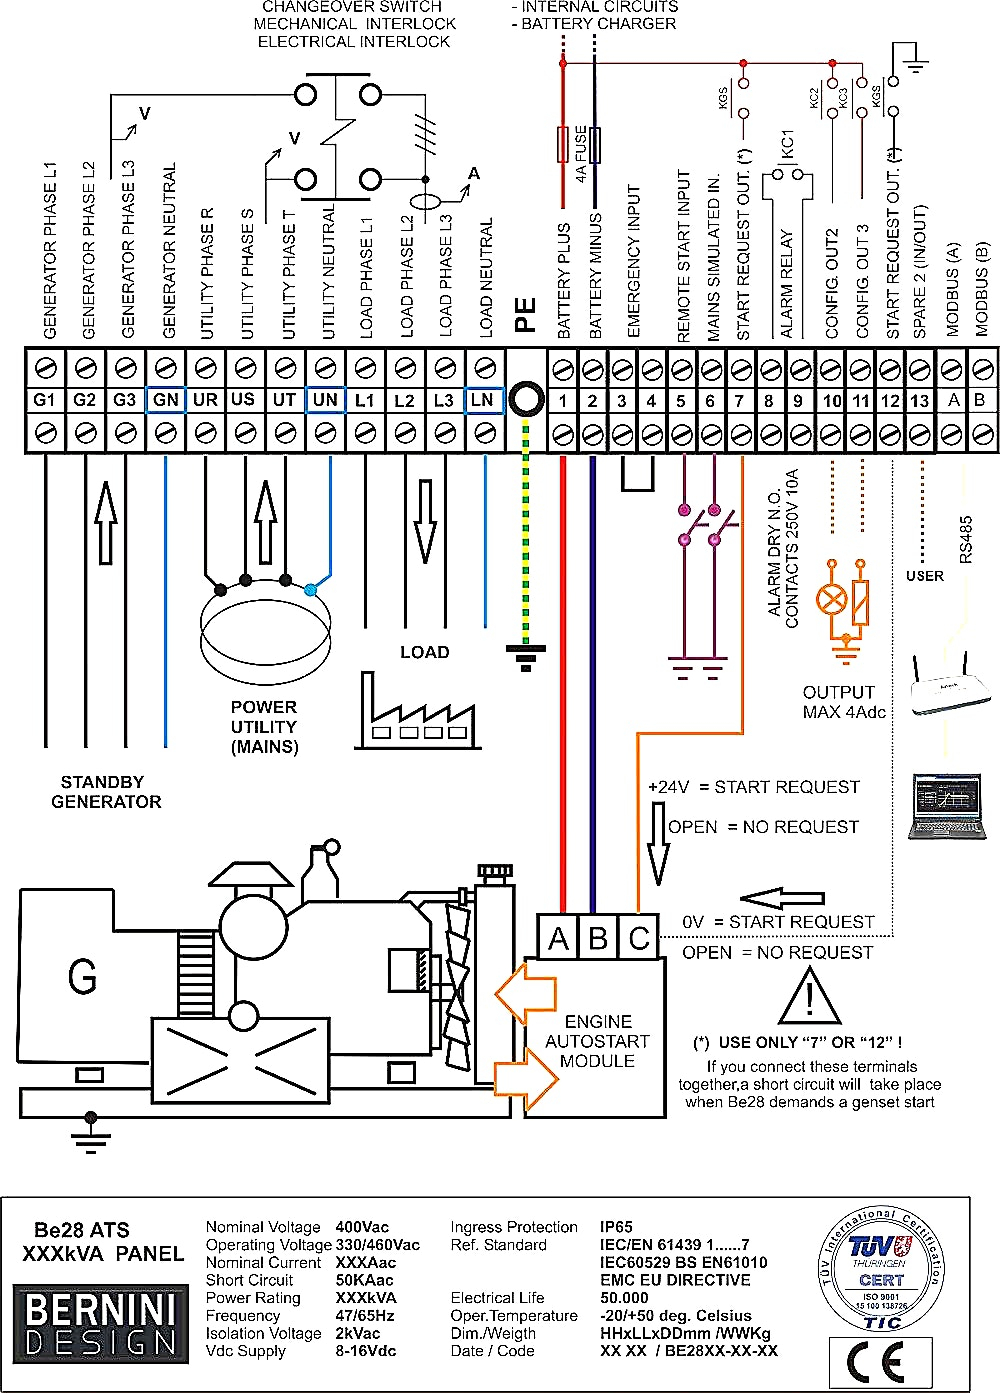 Generac Smart Switch Wiring Diagram Collection